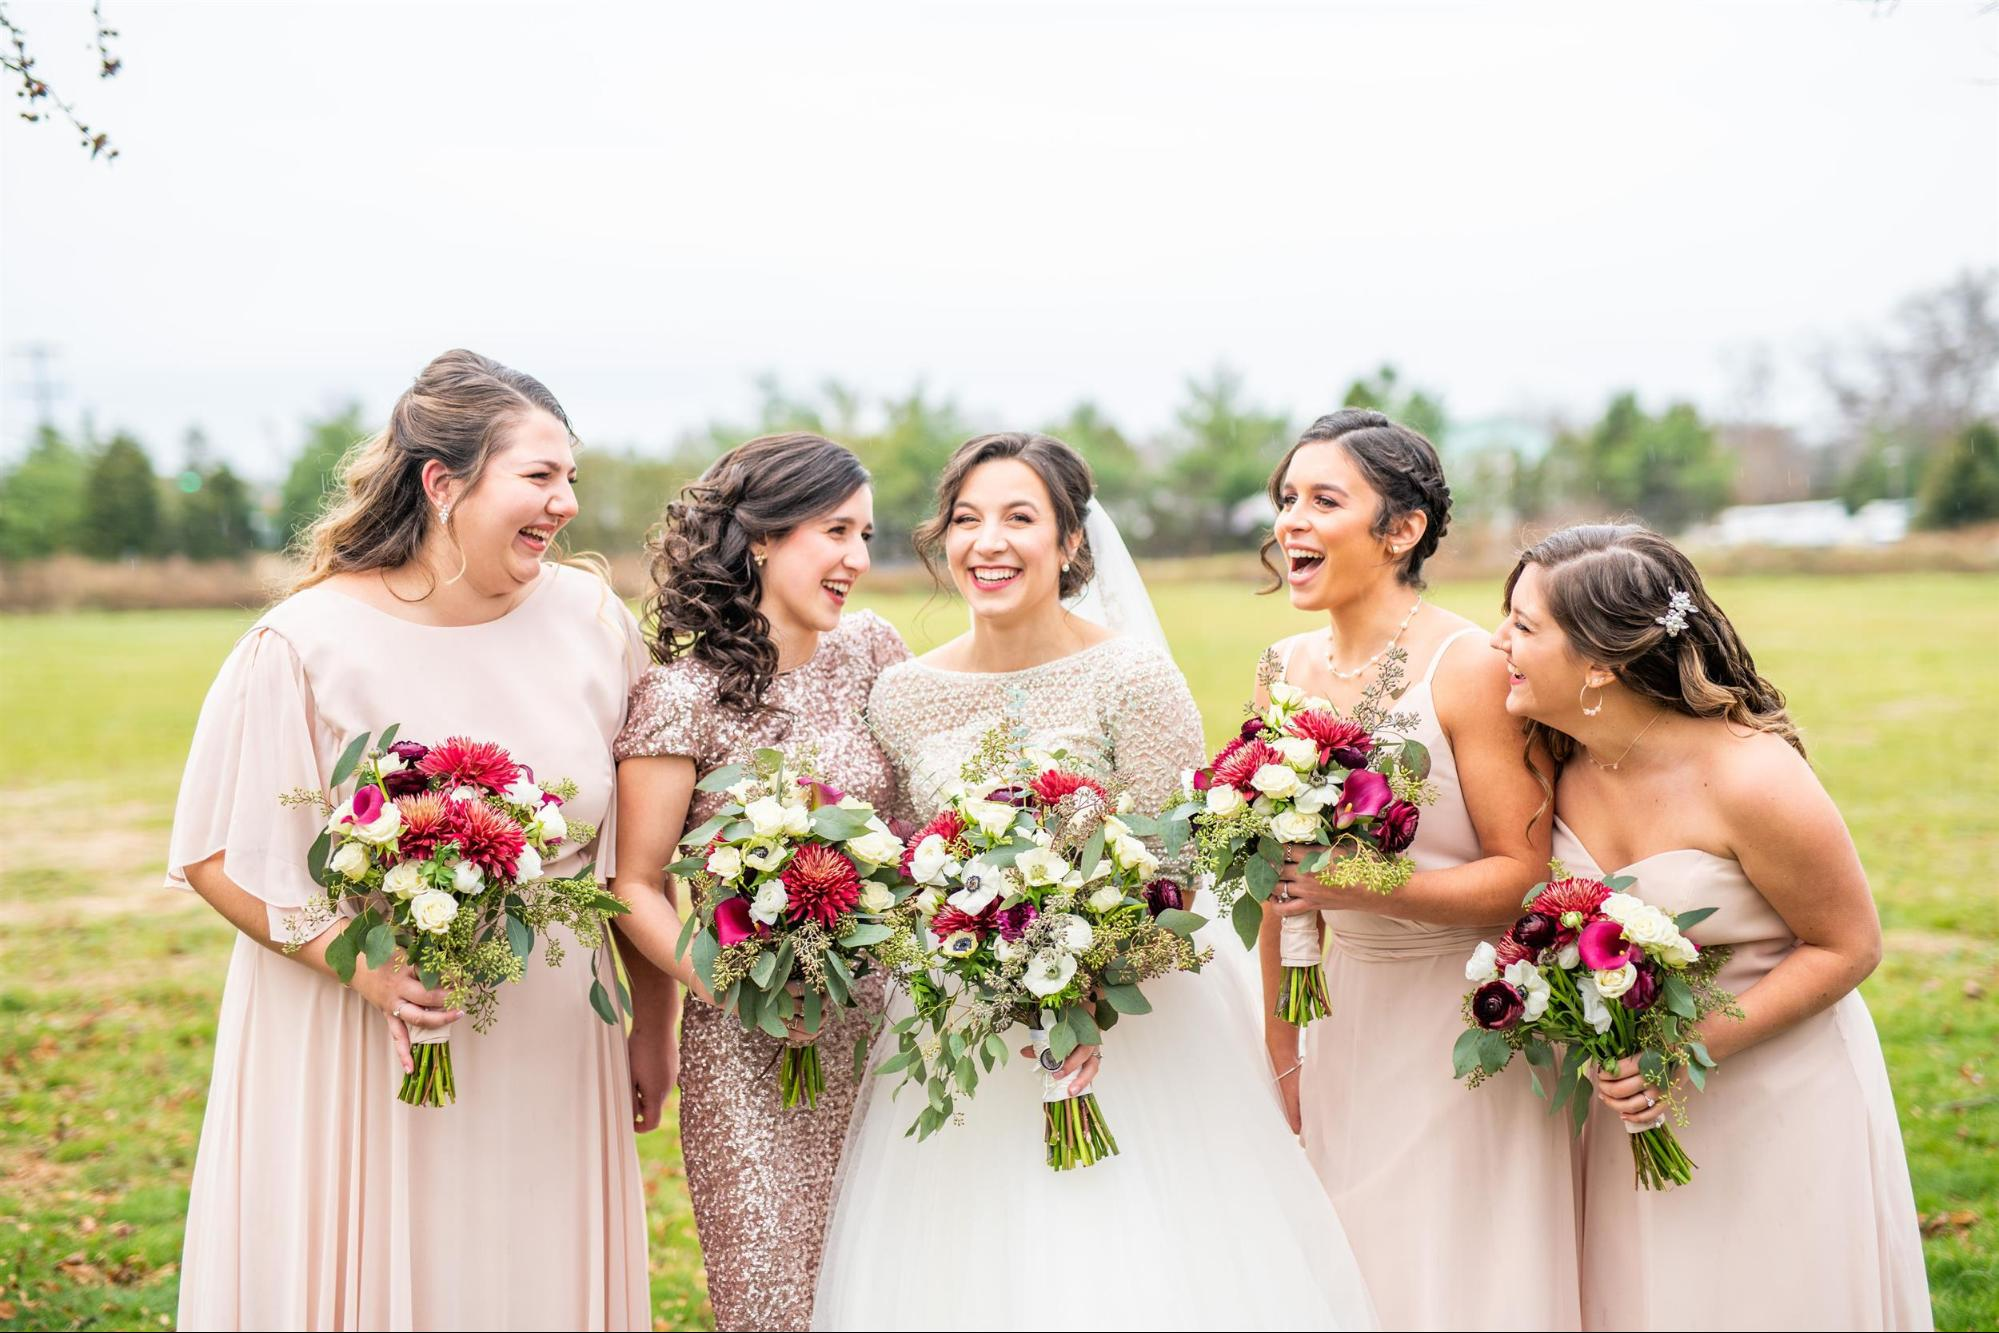 sequin maid of honor dress - Kaitlyn Ferris Photography